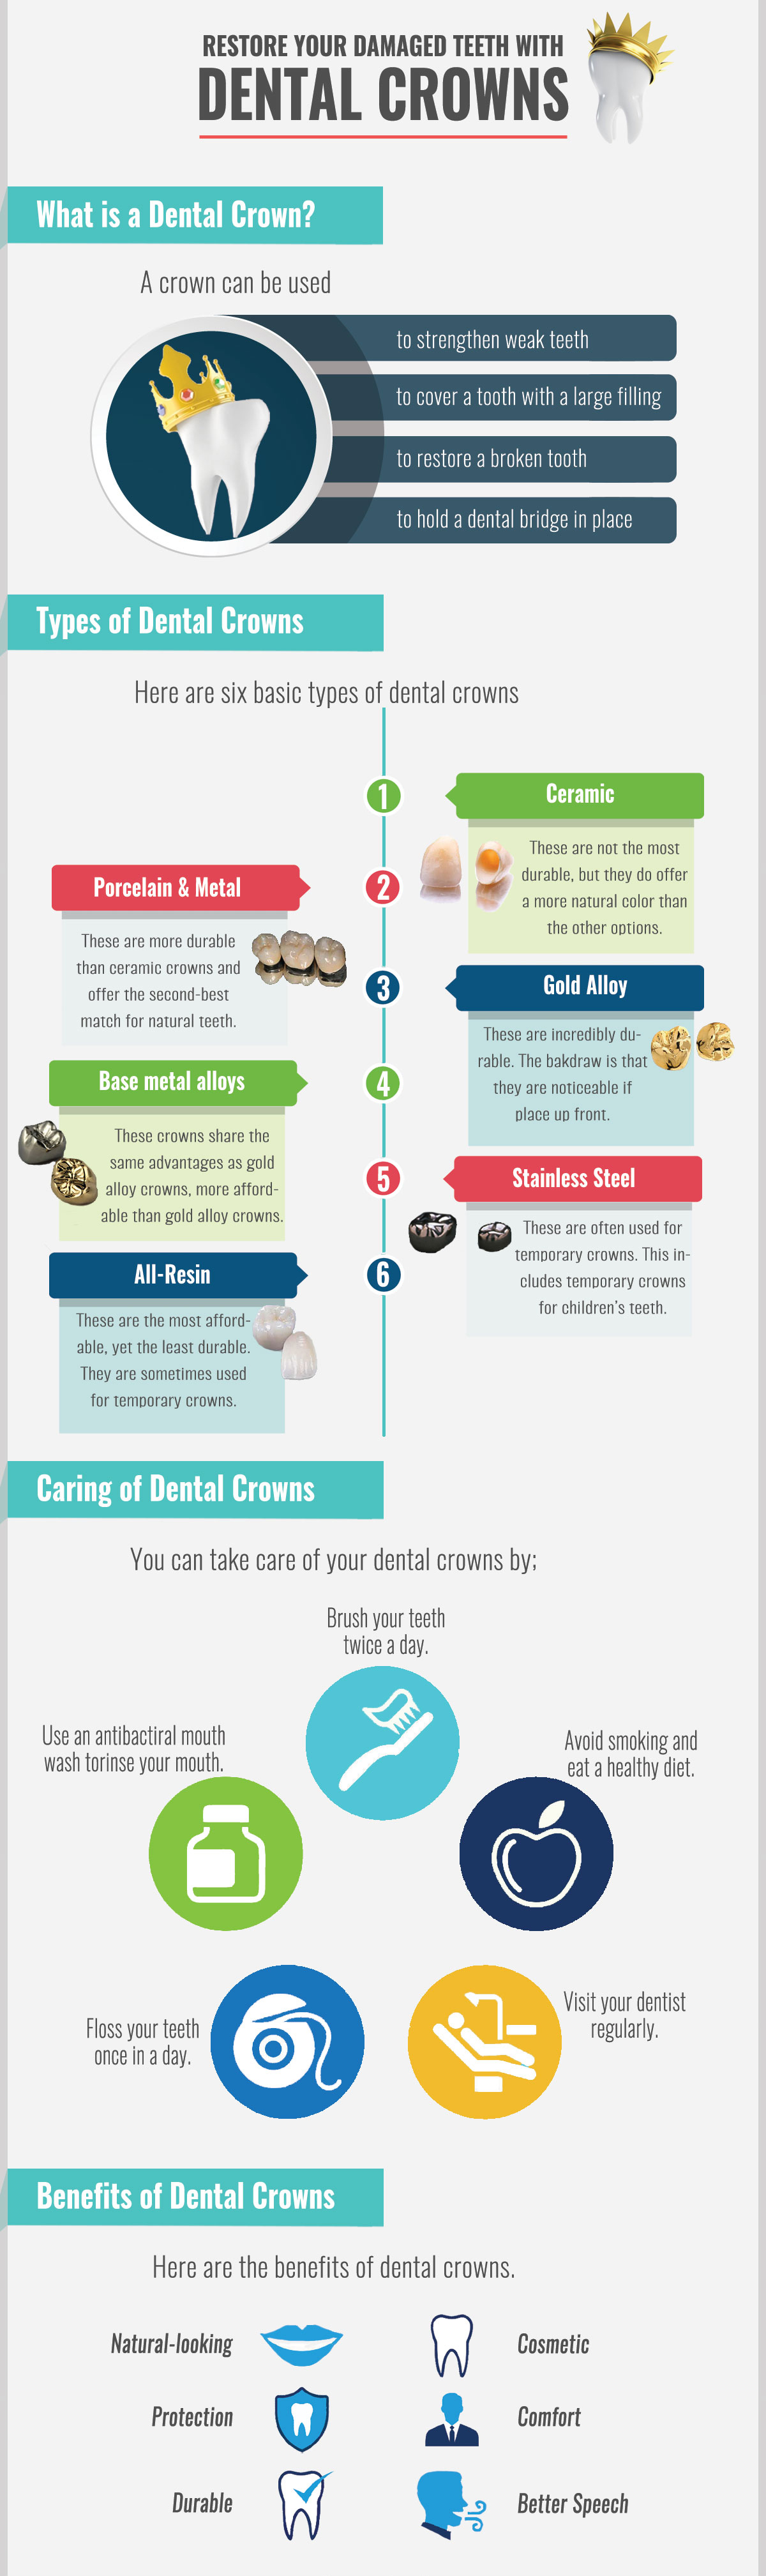 Restore Your Damaged Teeth With Dental Crowns-infographic